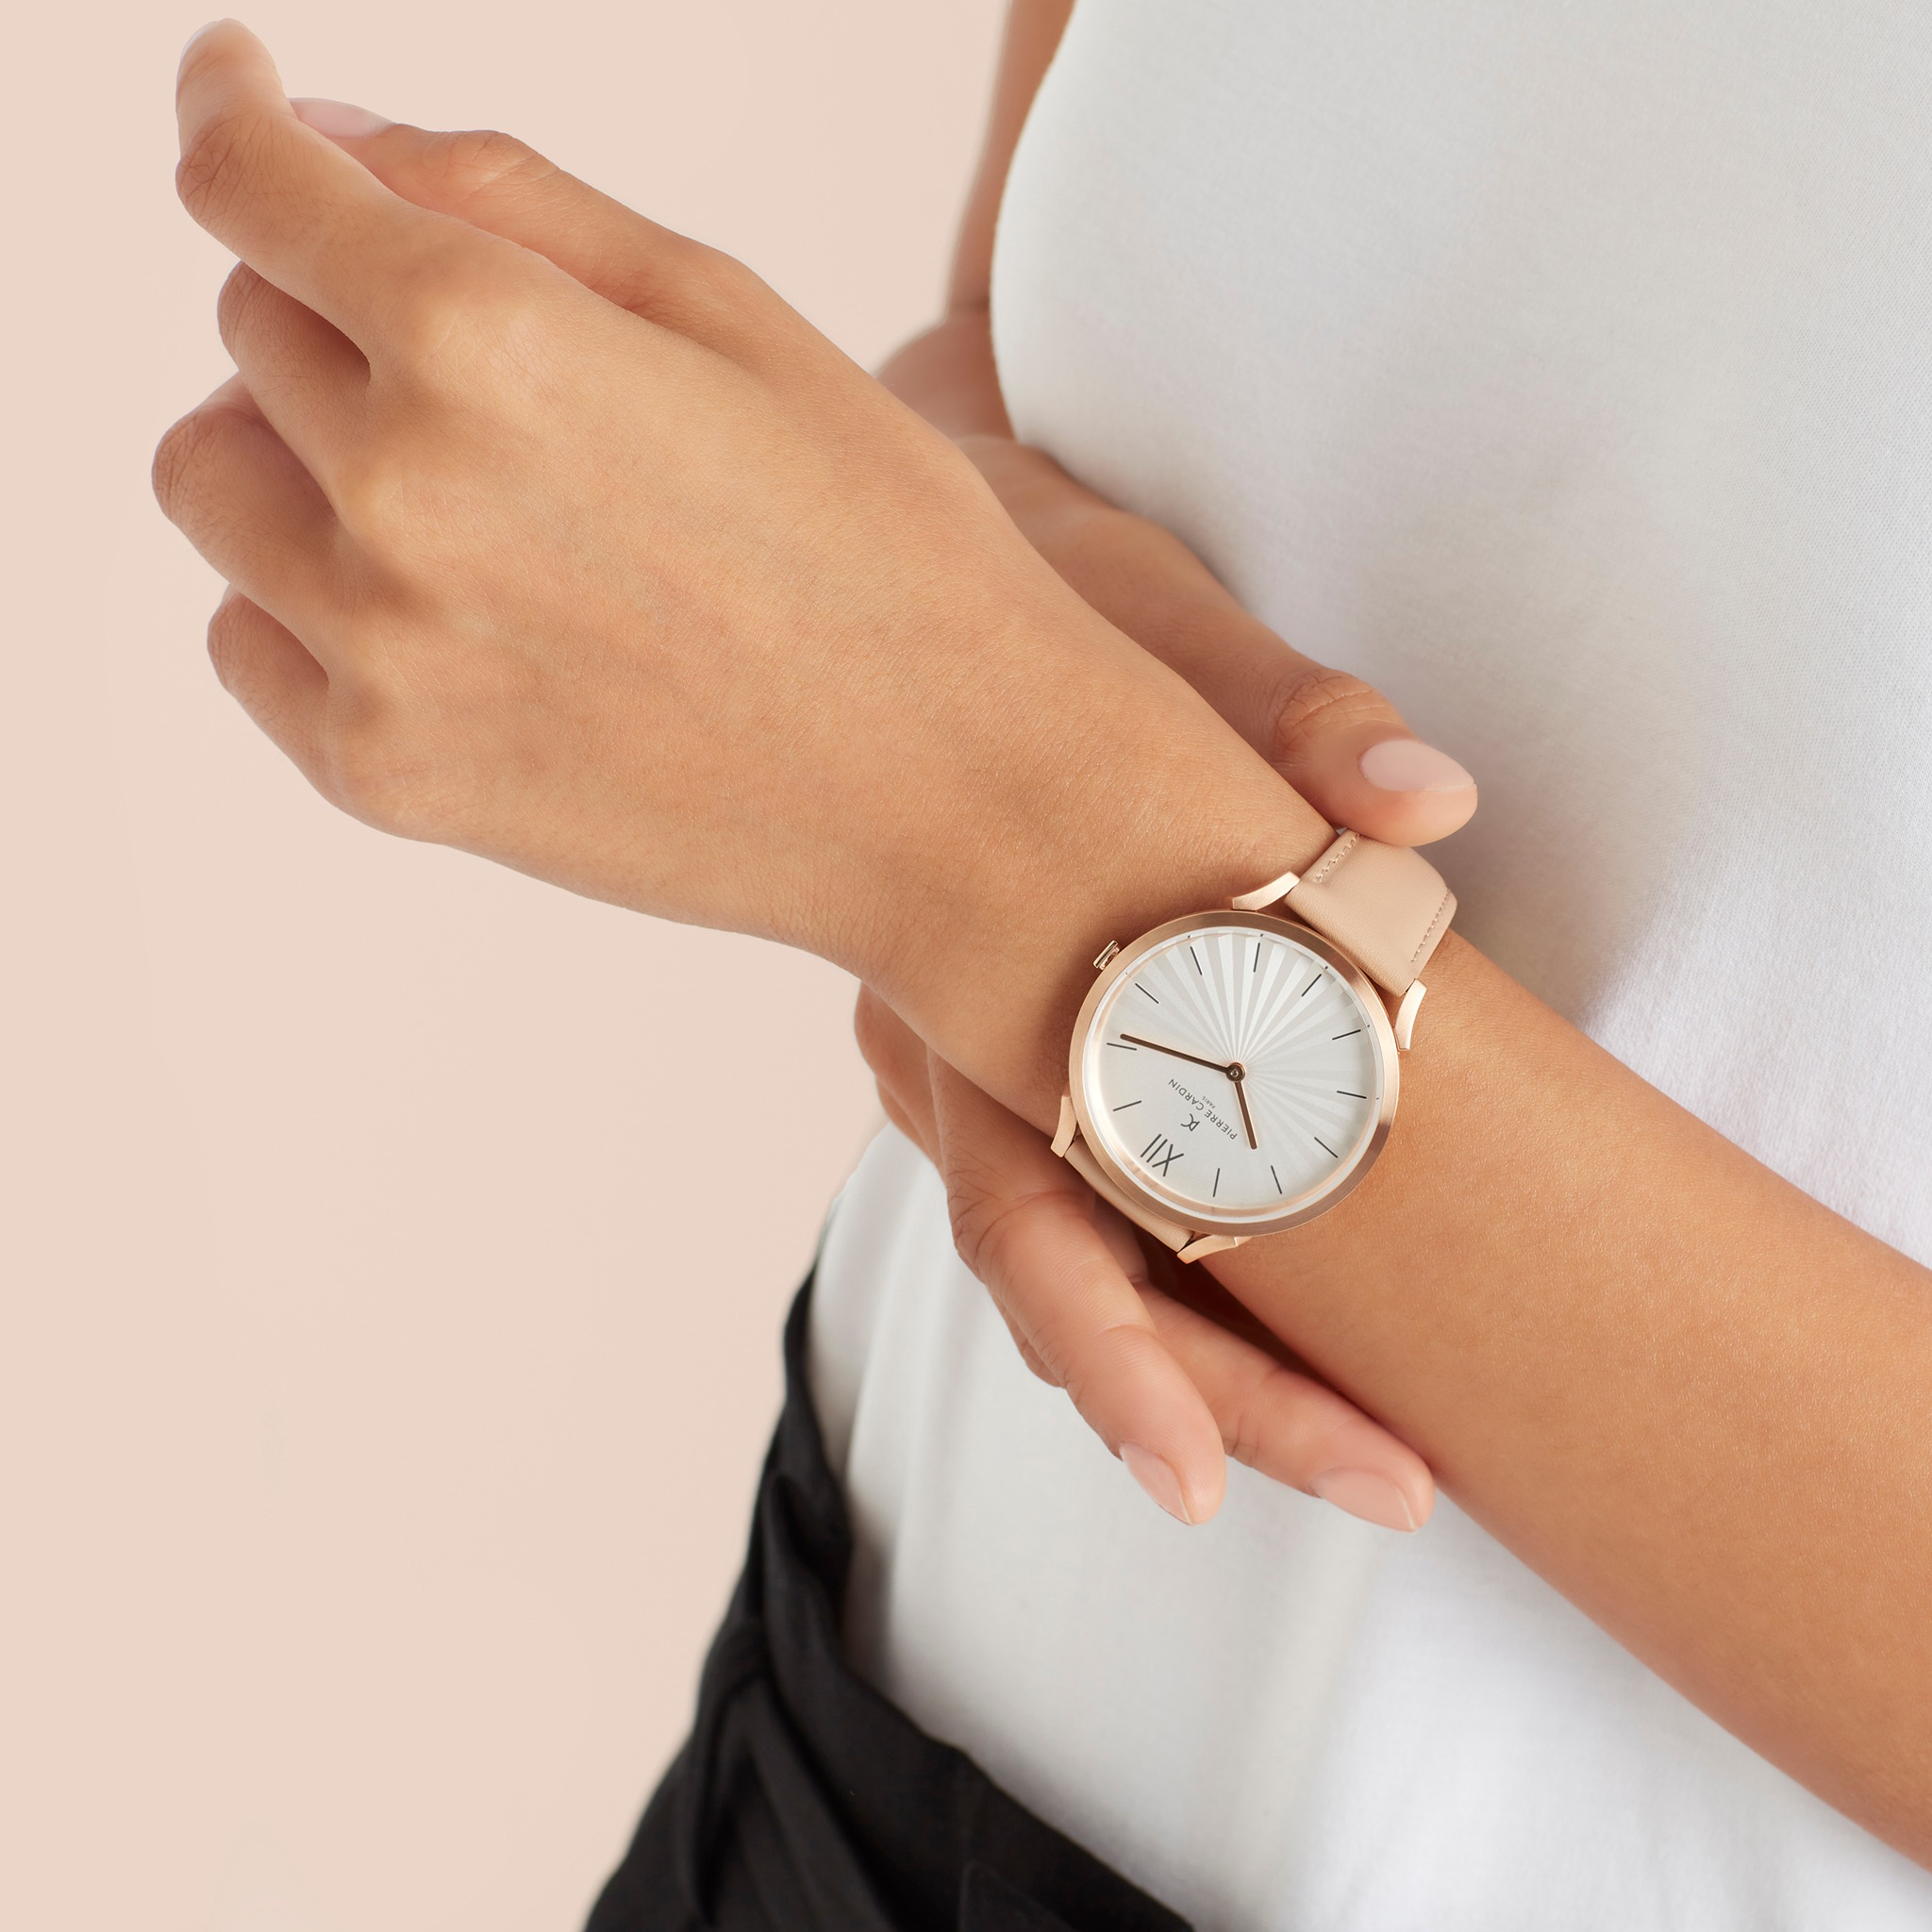 Pierre Cardin genuine watch CPI.2002 has a design suitable for both men and women.  Elegant white dial with metallic stripe numerals, two hour and minute hands.  Elegant cream-colored leather band with gold-plated metal bezel.  The product is priced at 1.9 million dong, 50% lower than the original price.